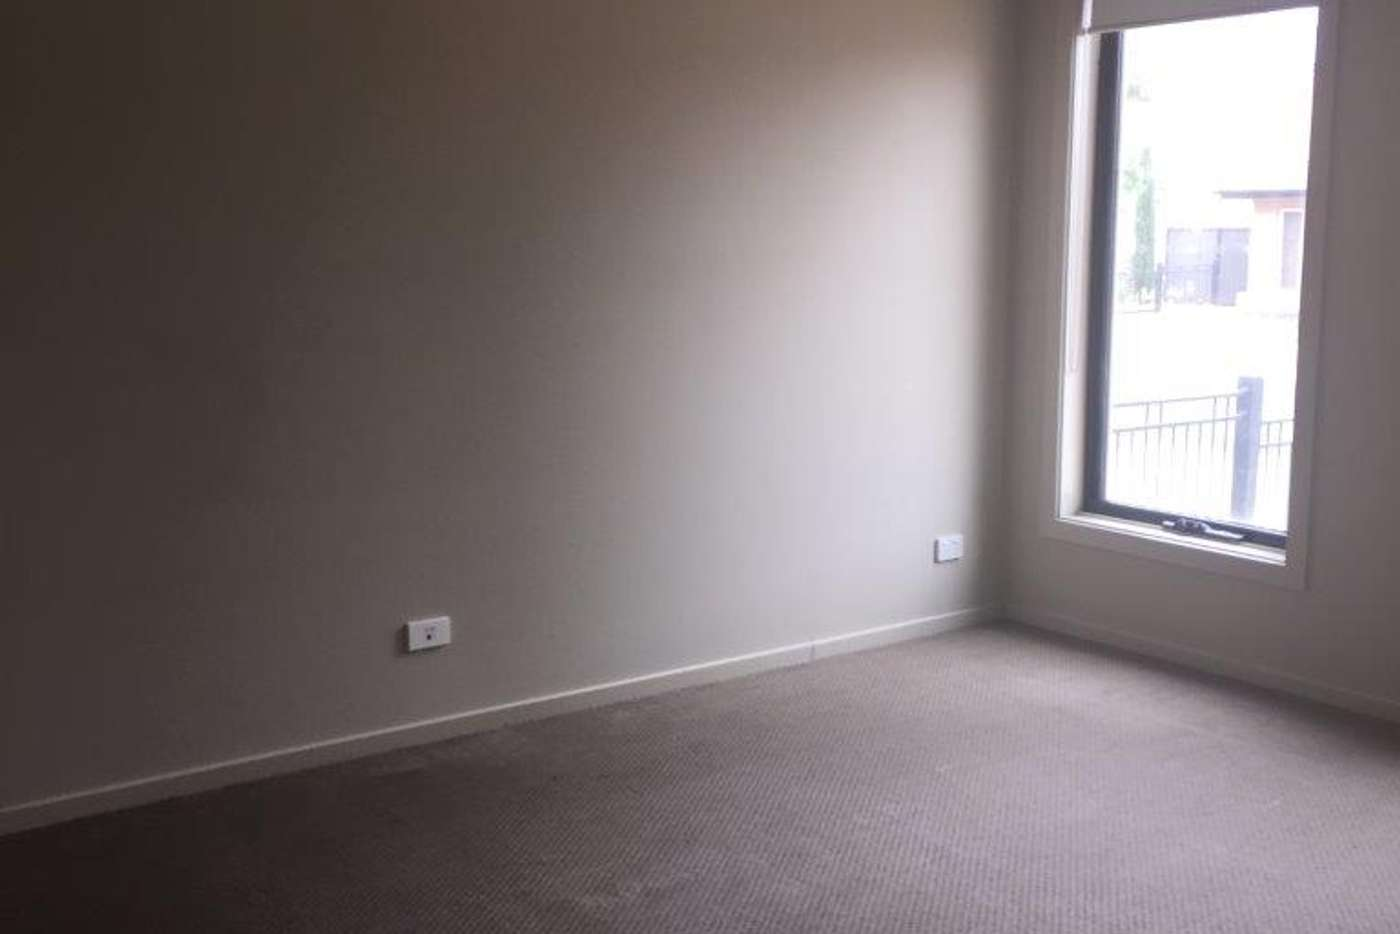 Sixth view of Homely house listing, 18 Brinbrook Street, Tarneit VIC 3029